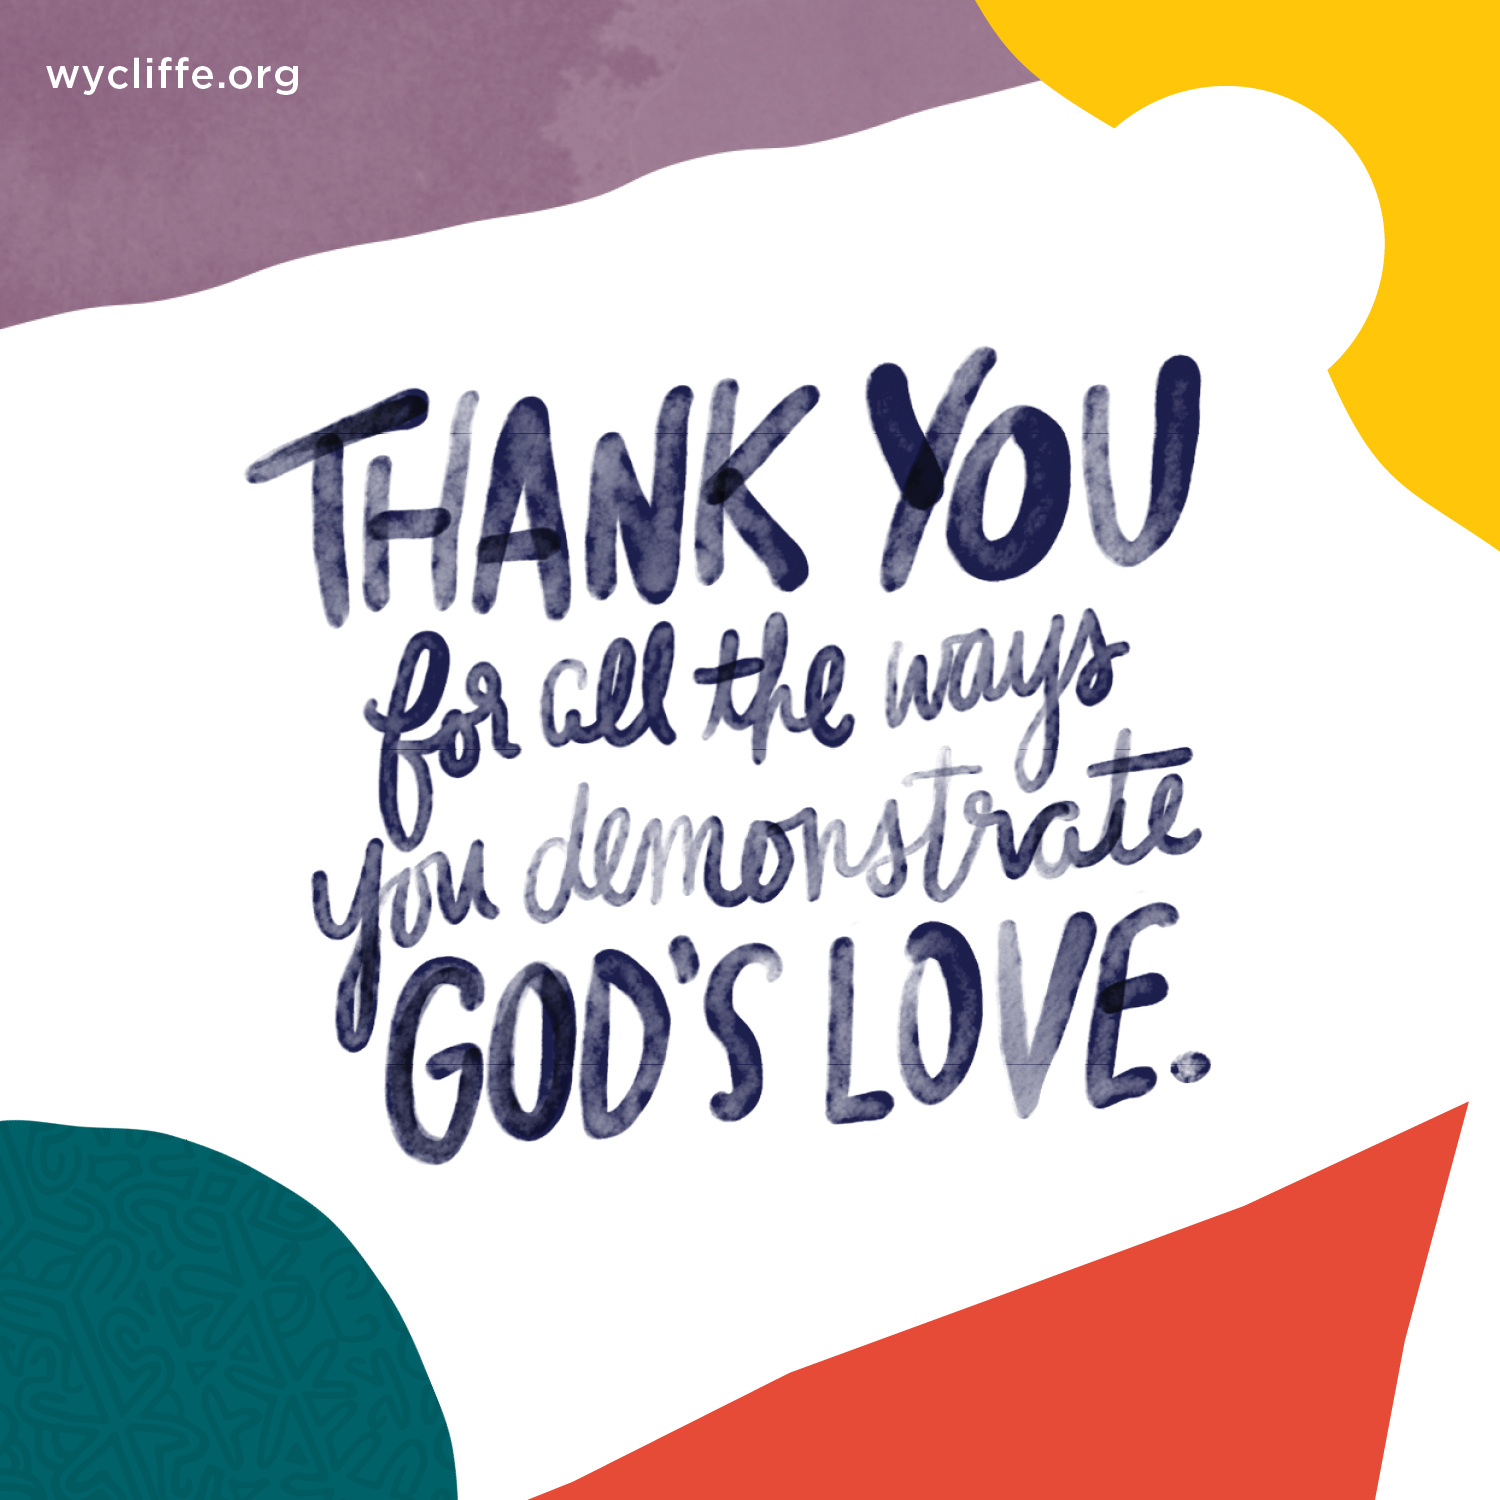 Thank you for all the ways you demonstrate God's love.